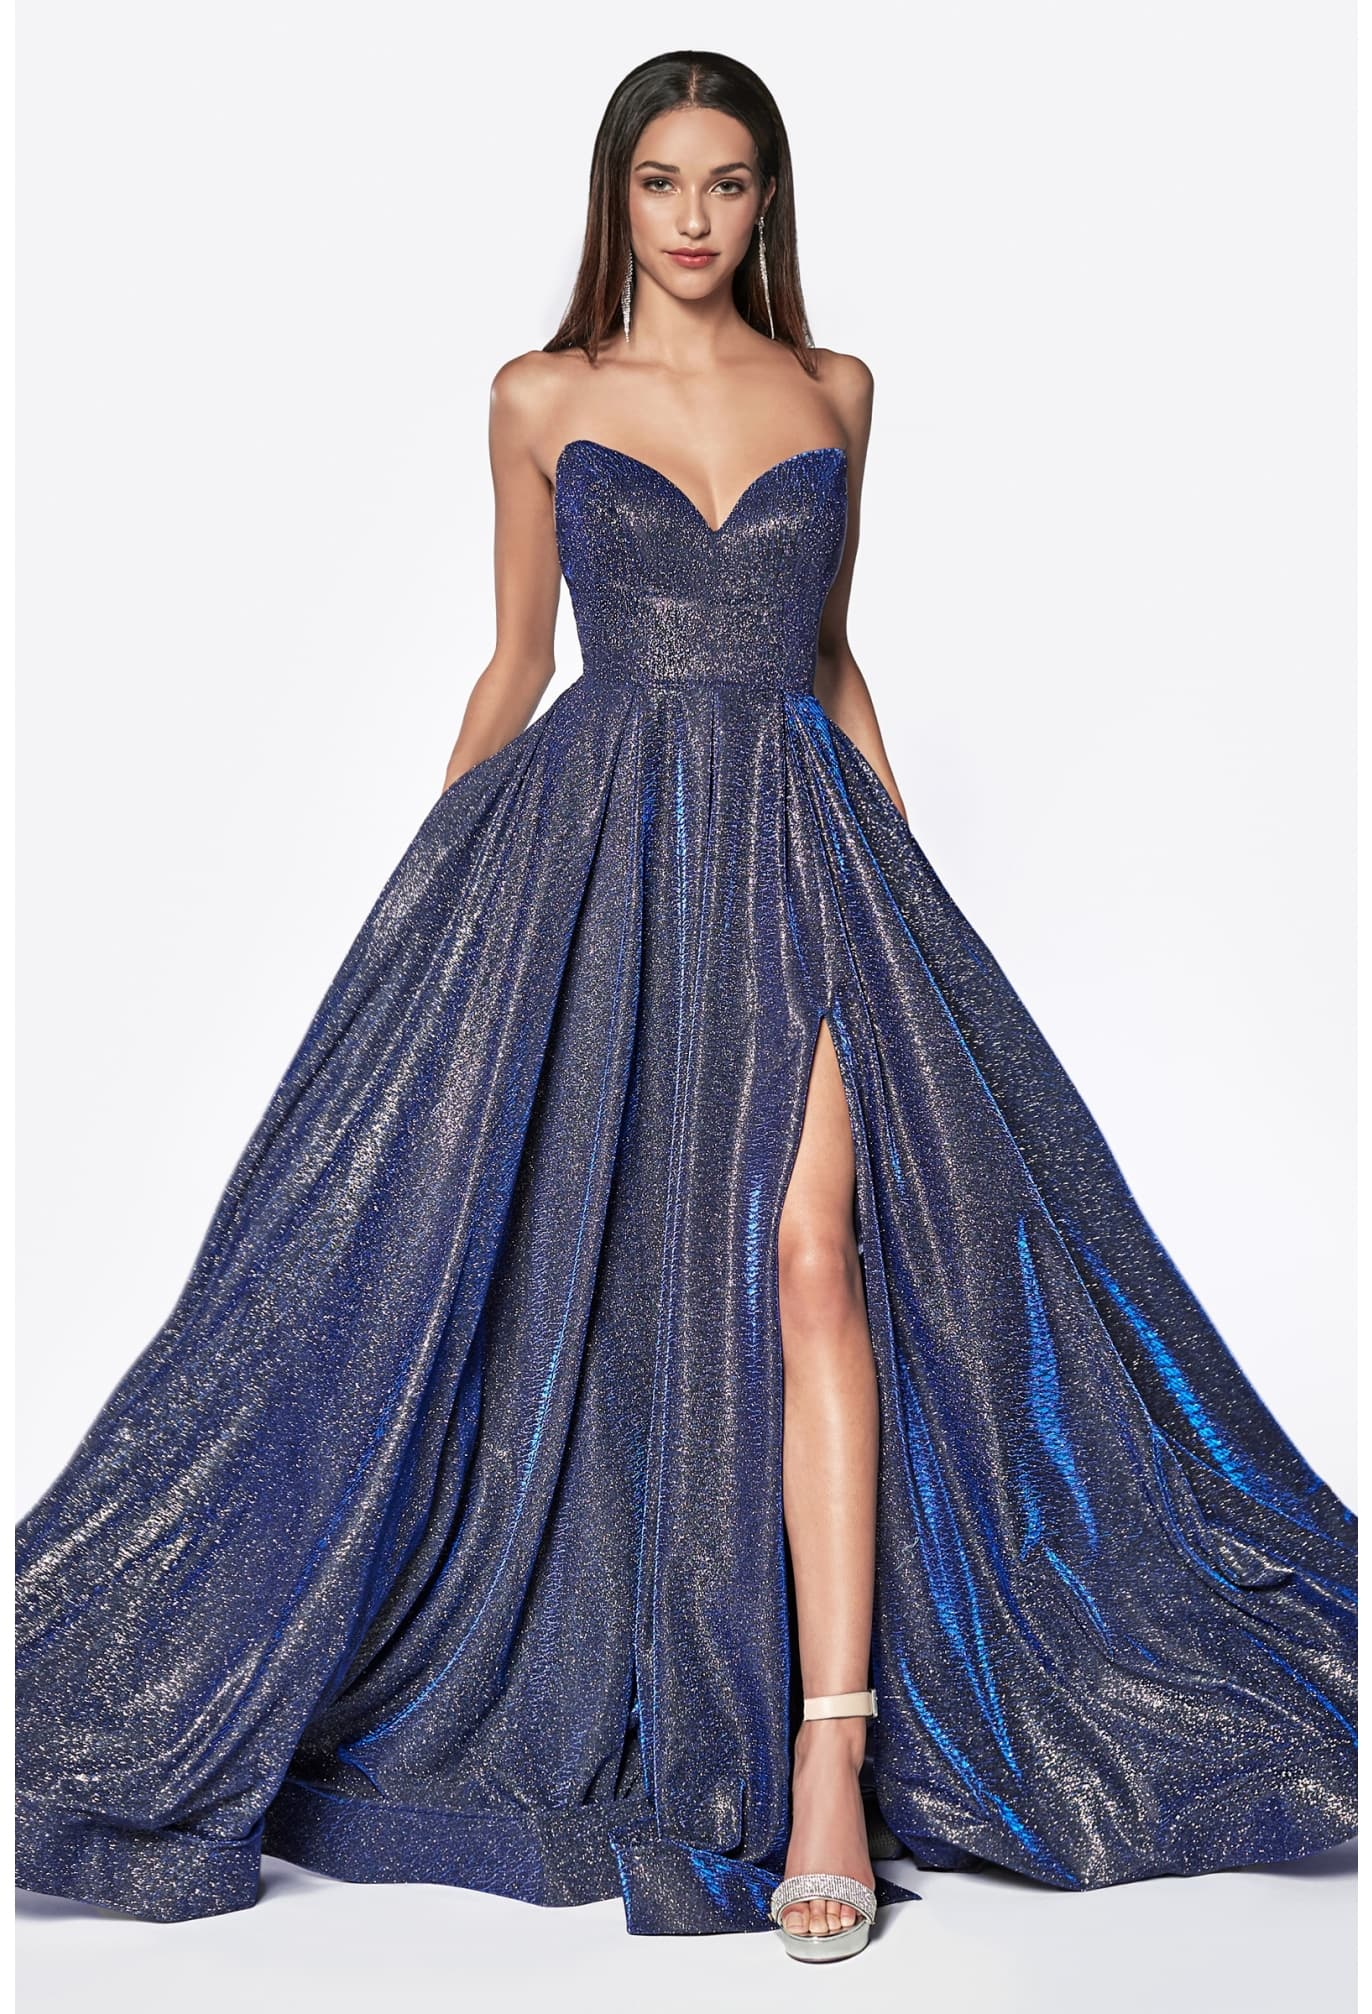 STRAPLESS GLITTER BALL GOWN WITH SWEETHEART NECKLINE AND LEG SLIT